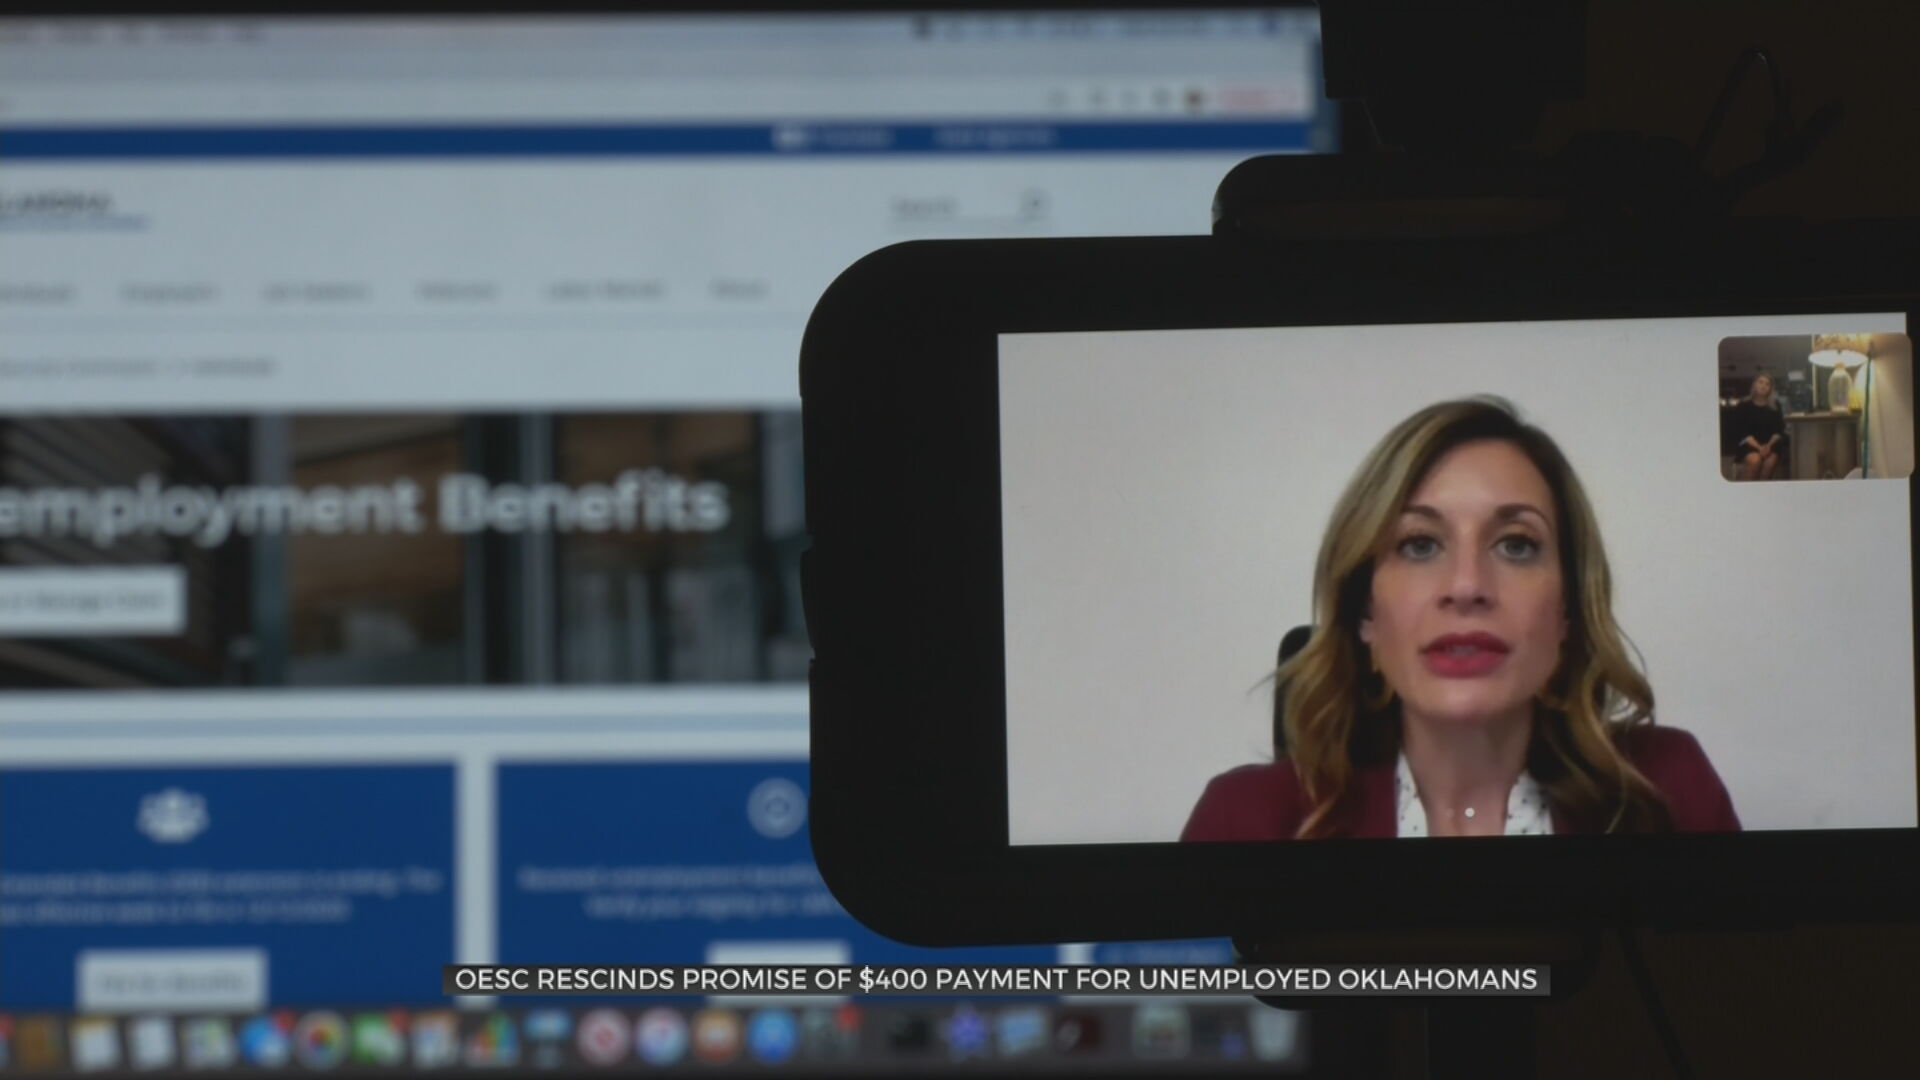 OESC Rescinds Payment Promise Dealing 'Another Blow' To Unemployed Oklahomans